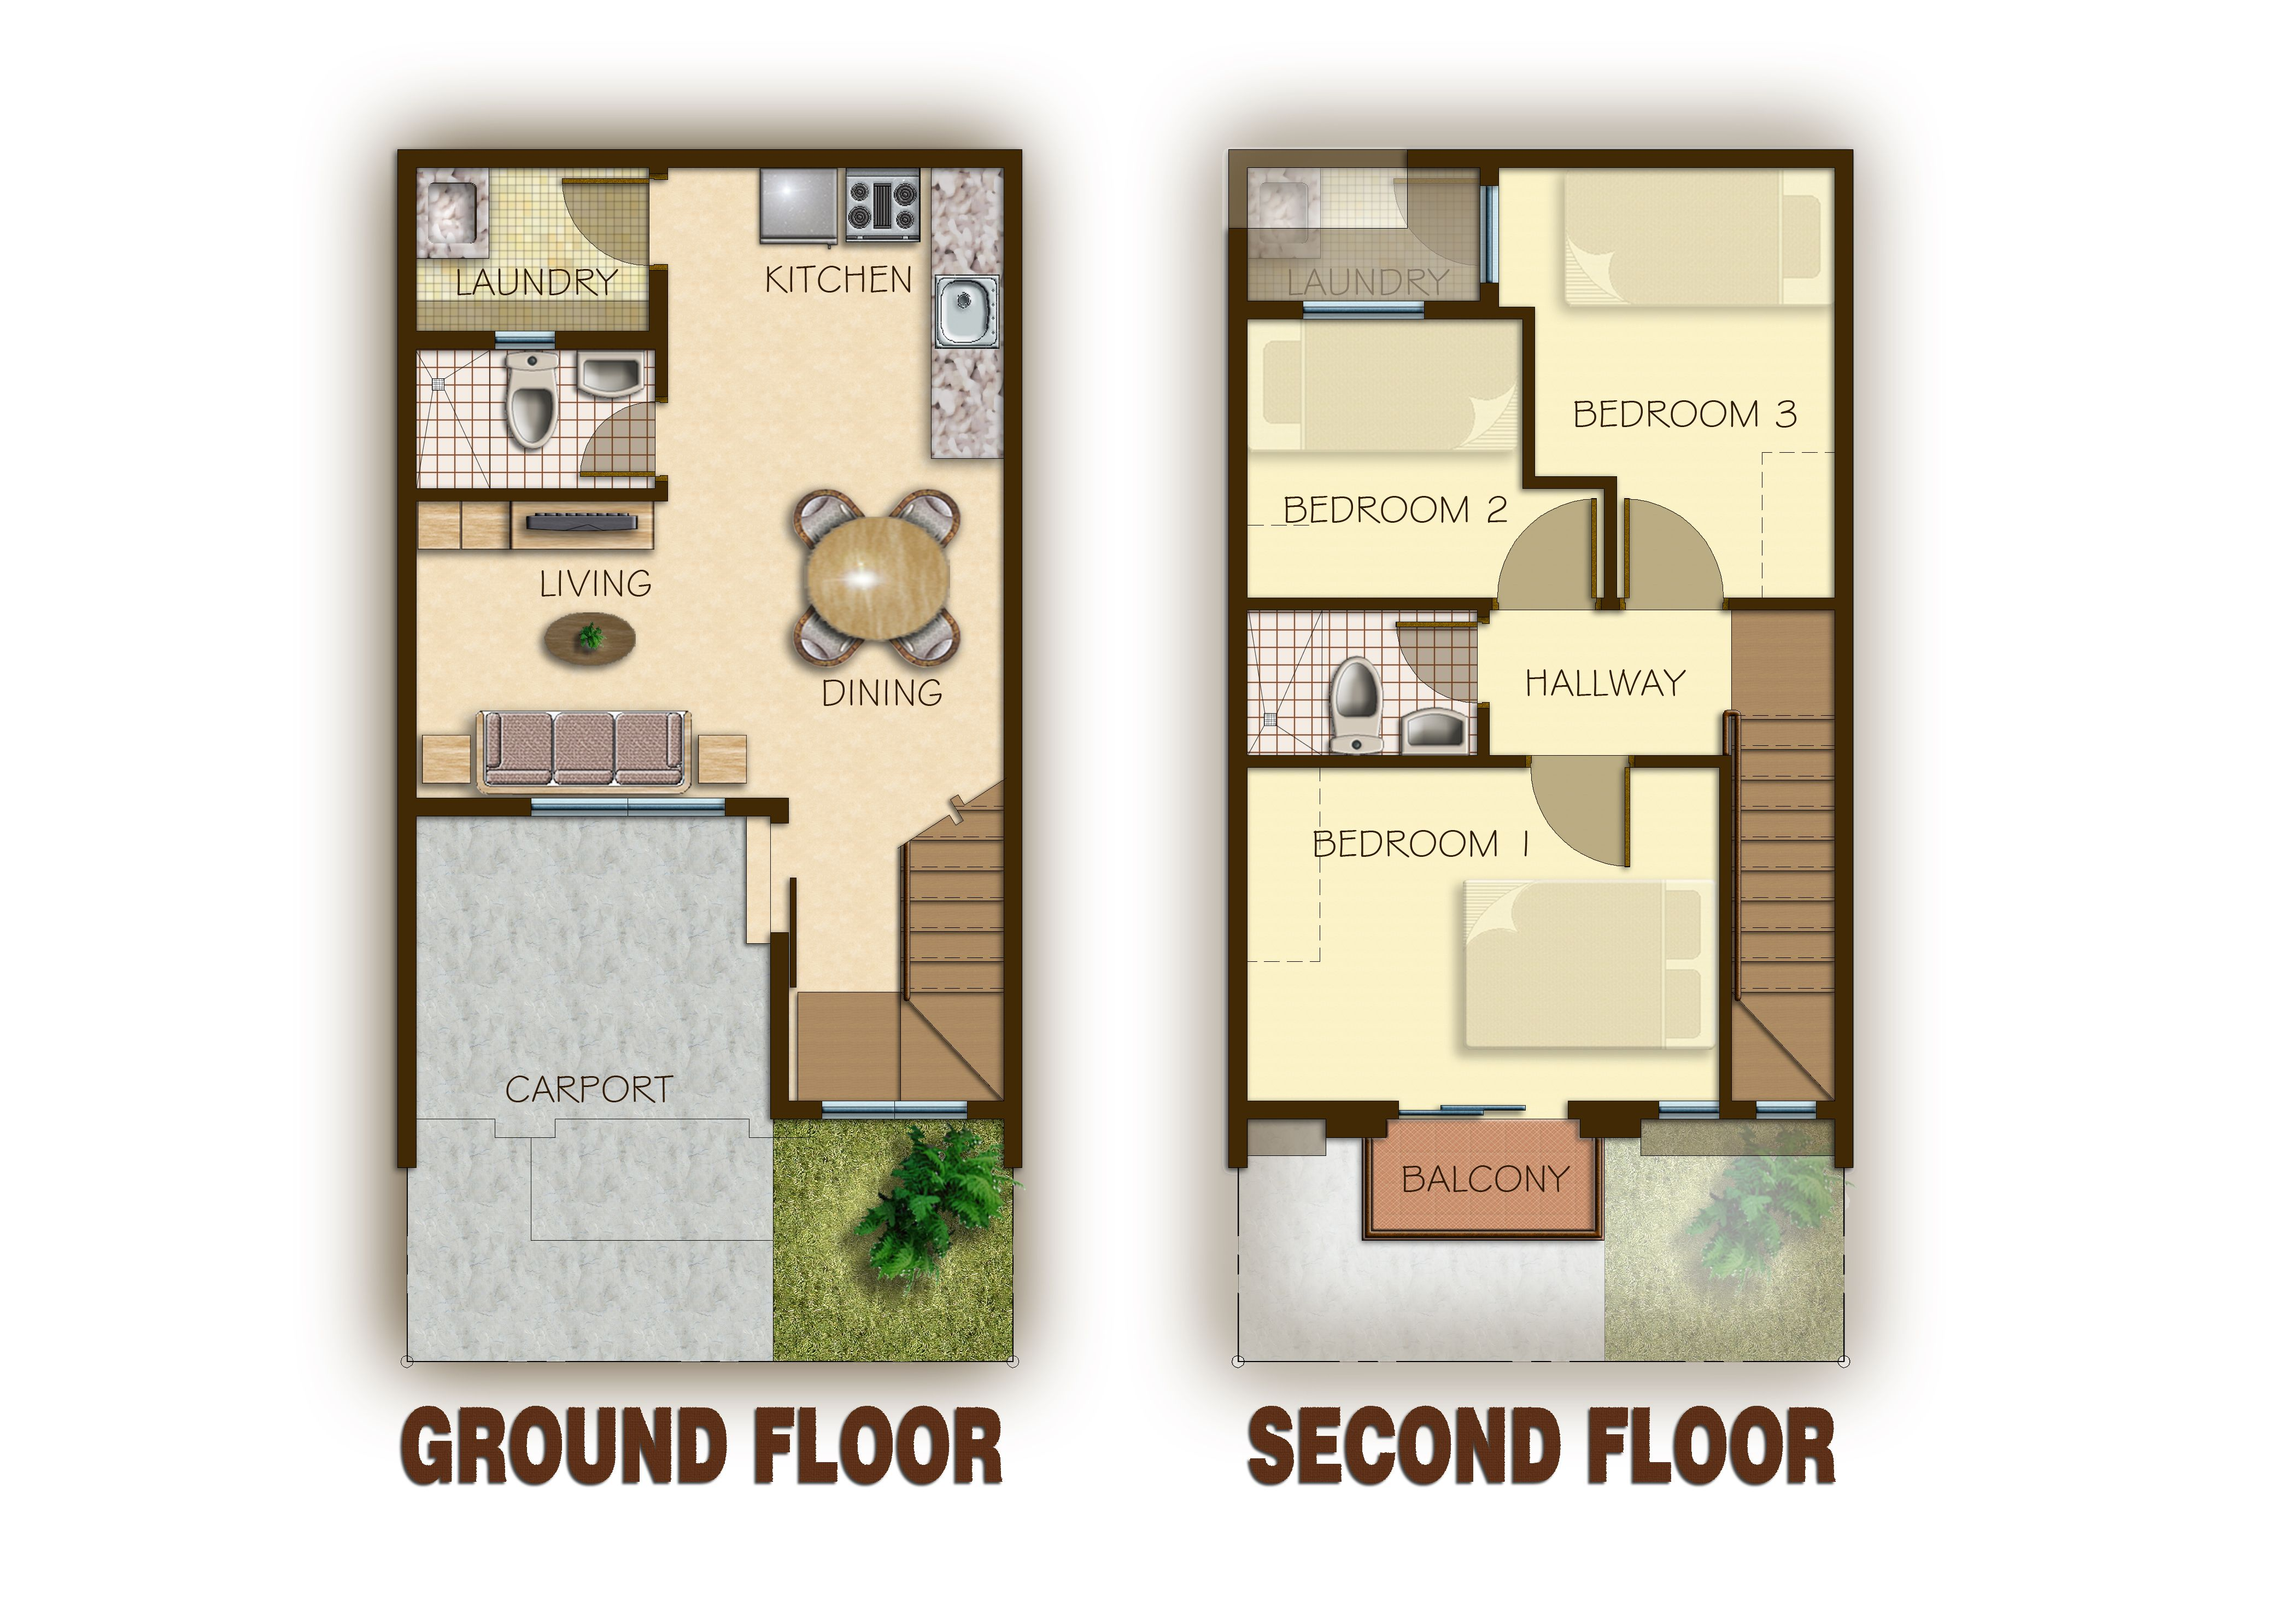 Floor Plans Garage Story Townhouse 2 Storey House Design House Plans Two Story House Design